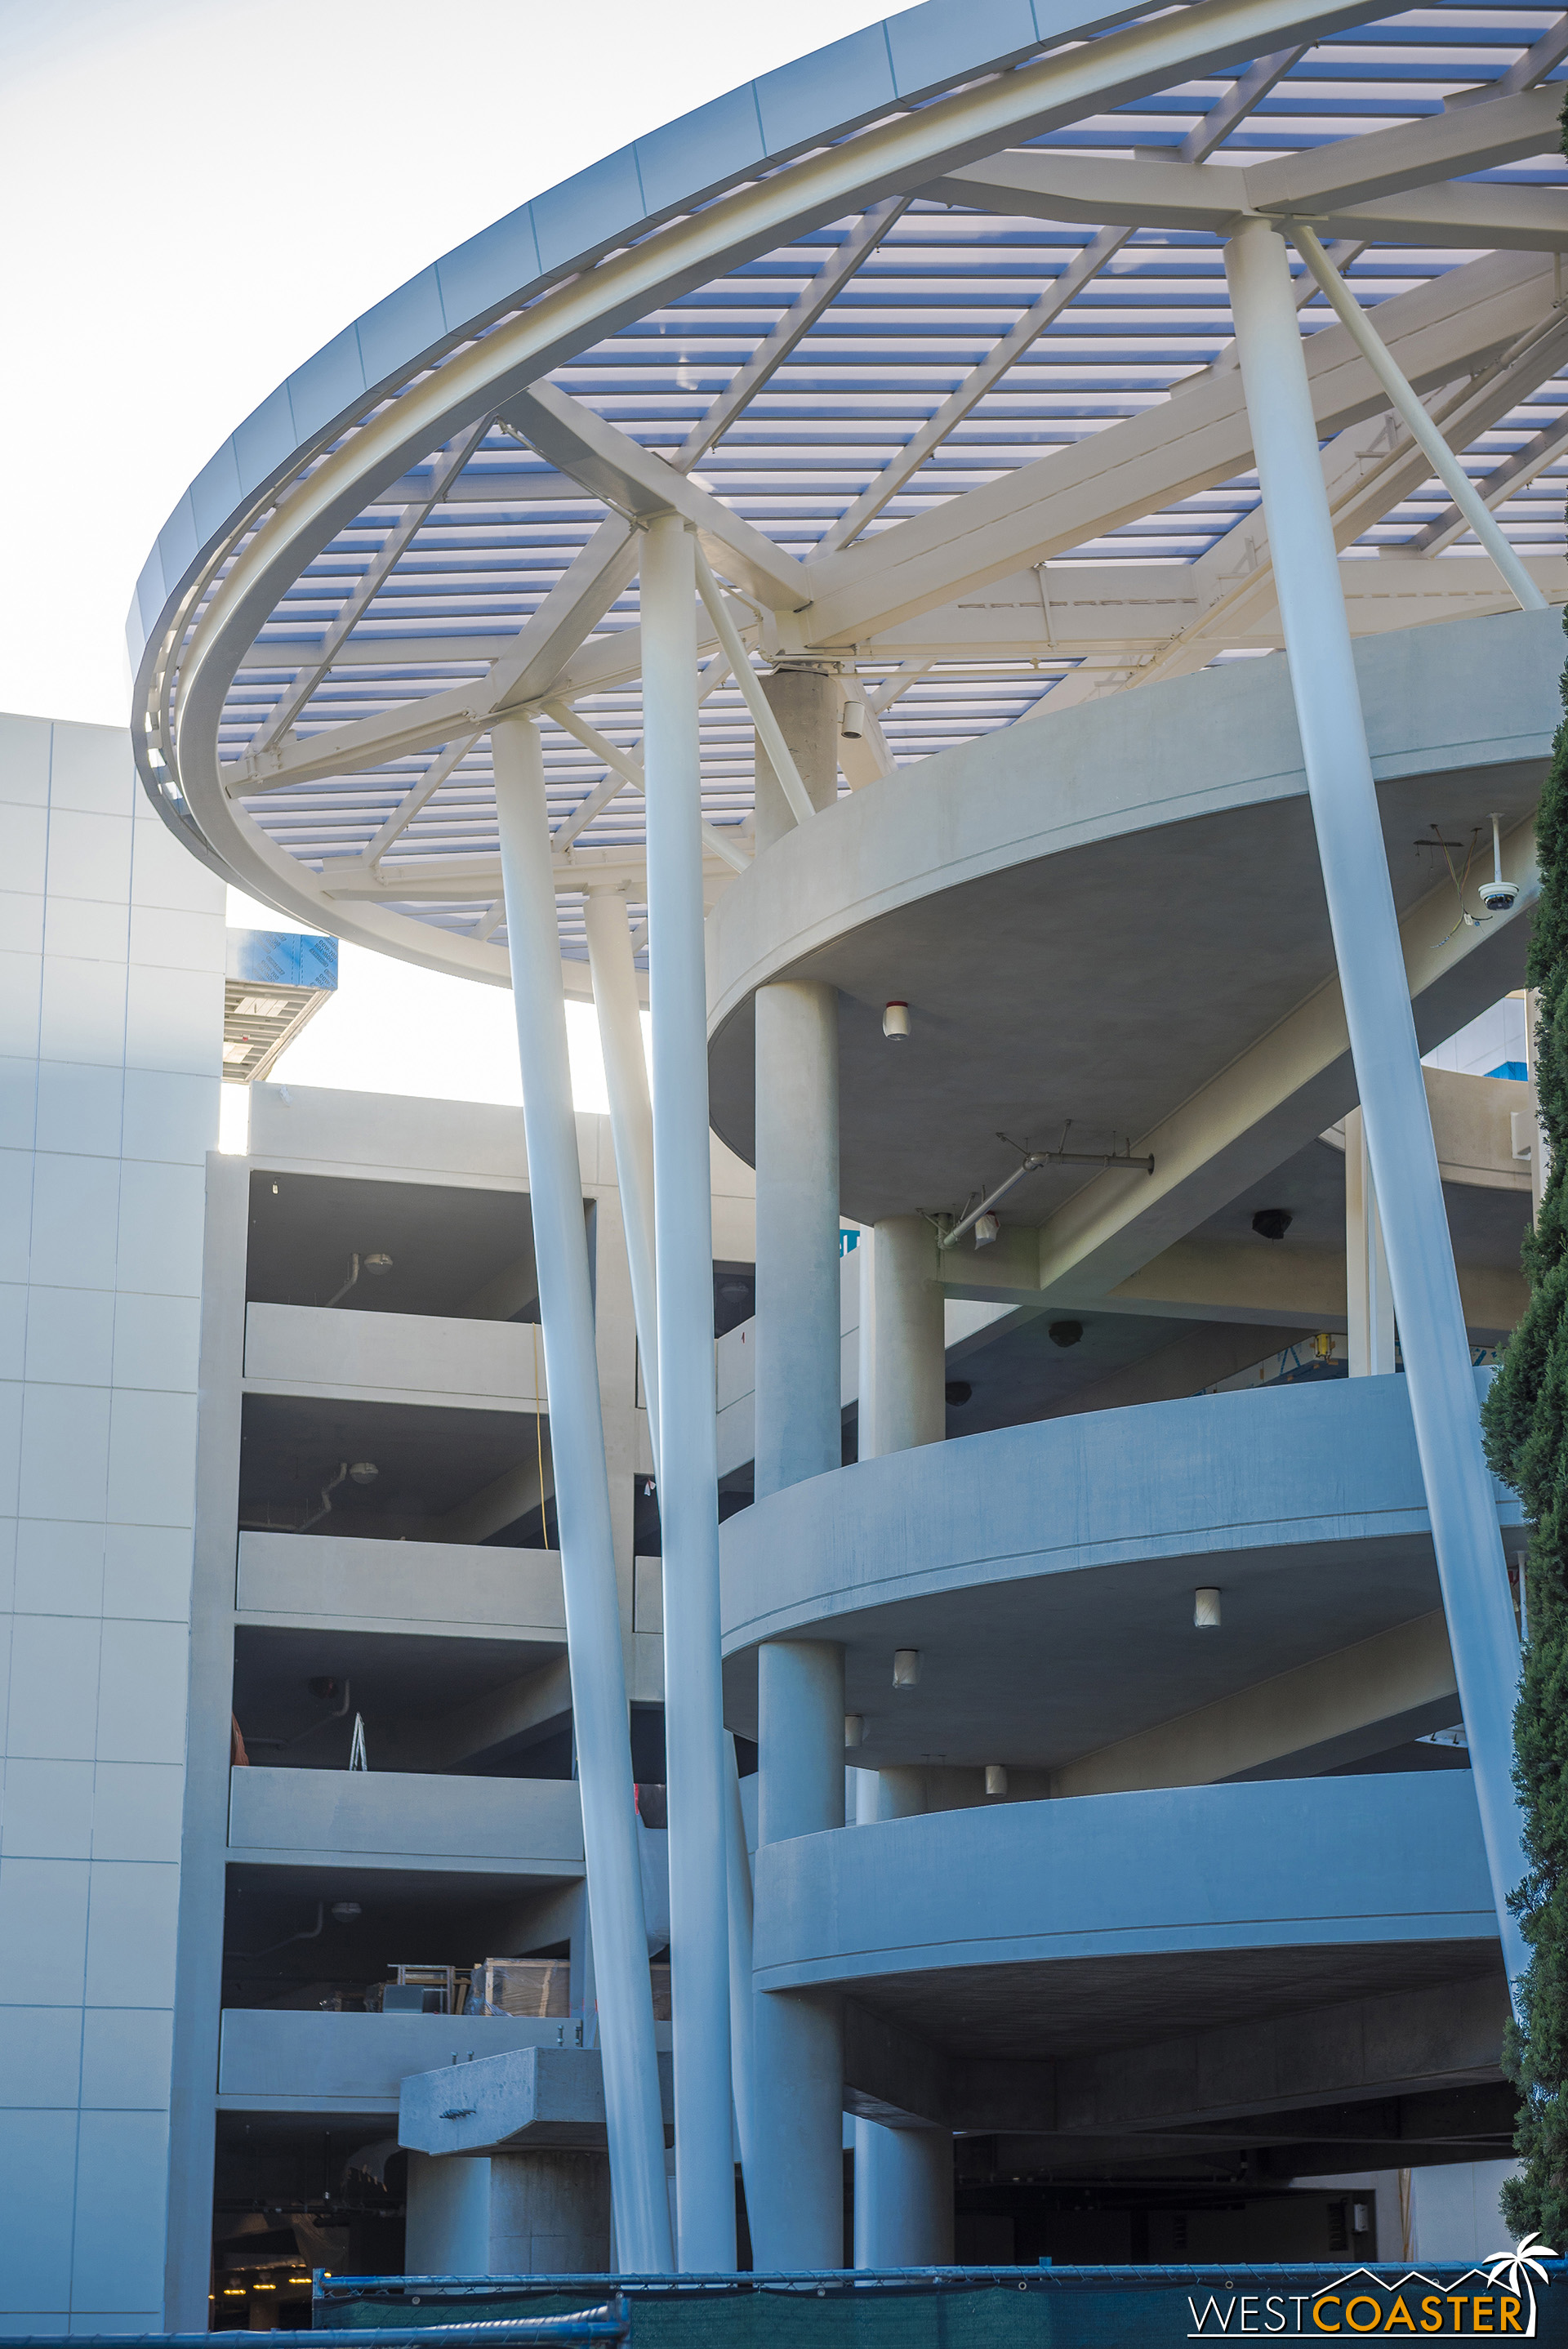 There's a column up on the parking structure side too.